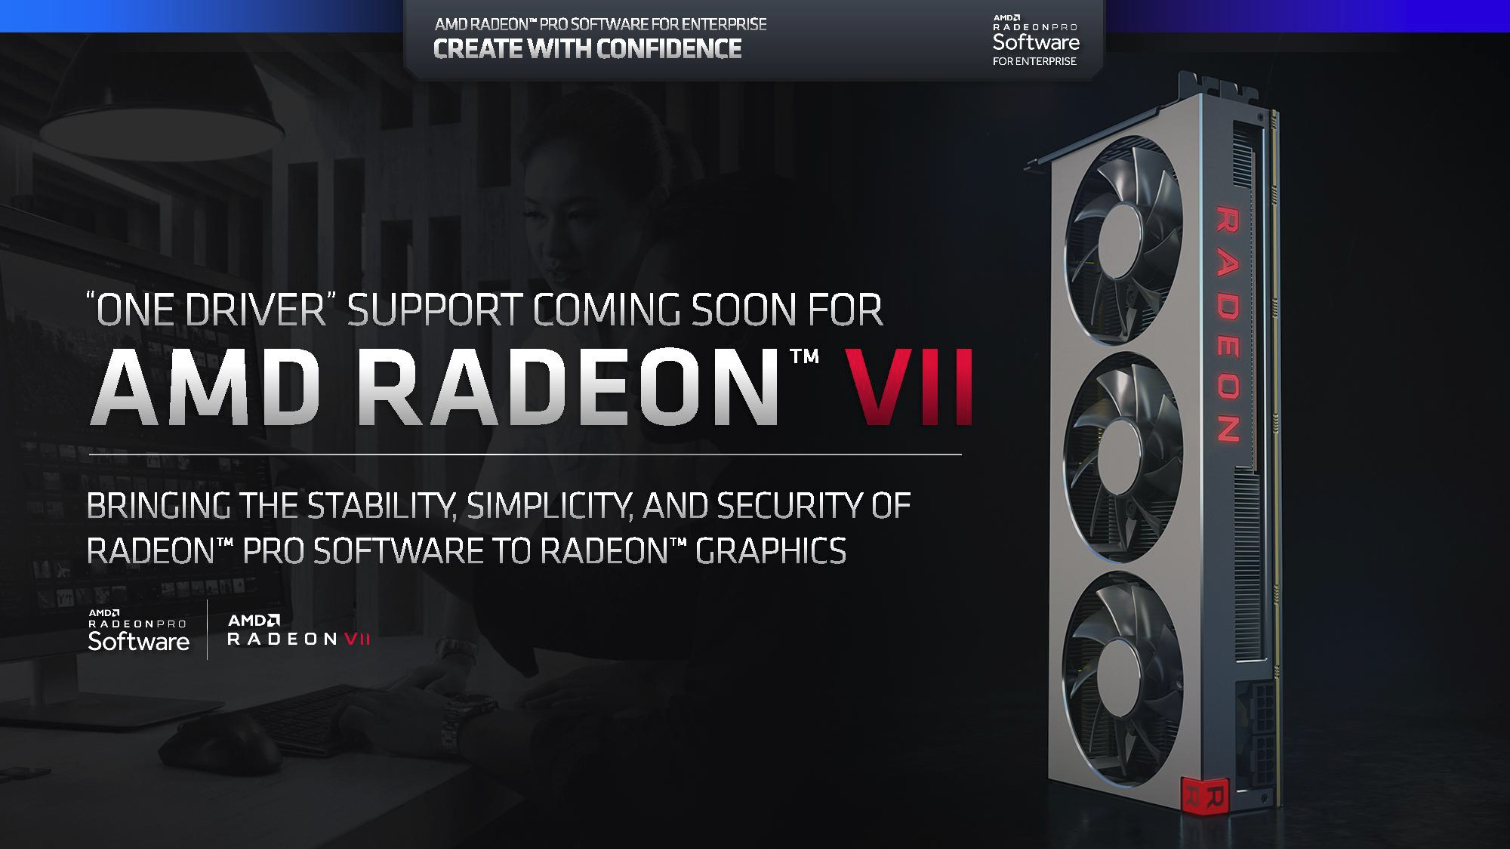 AMD Radeon VII To Recieve Radeon Pro Software For Enterprise